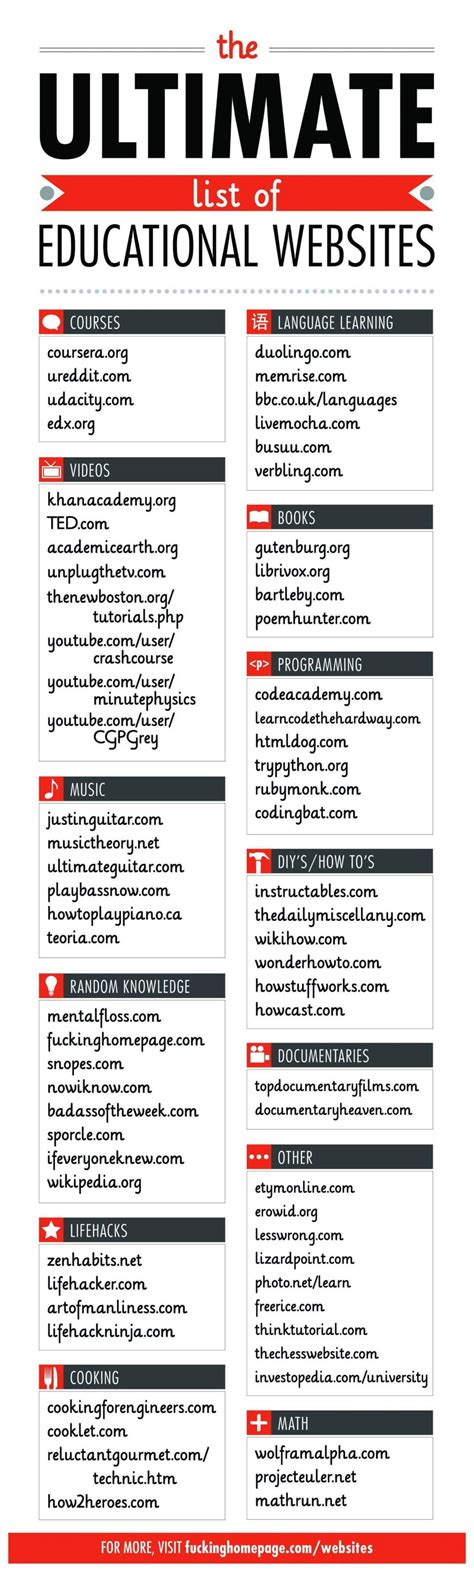 The Ultimate List Of Educational Websites